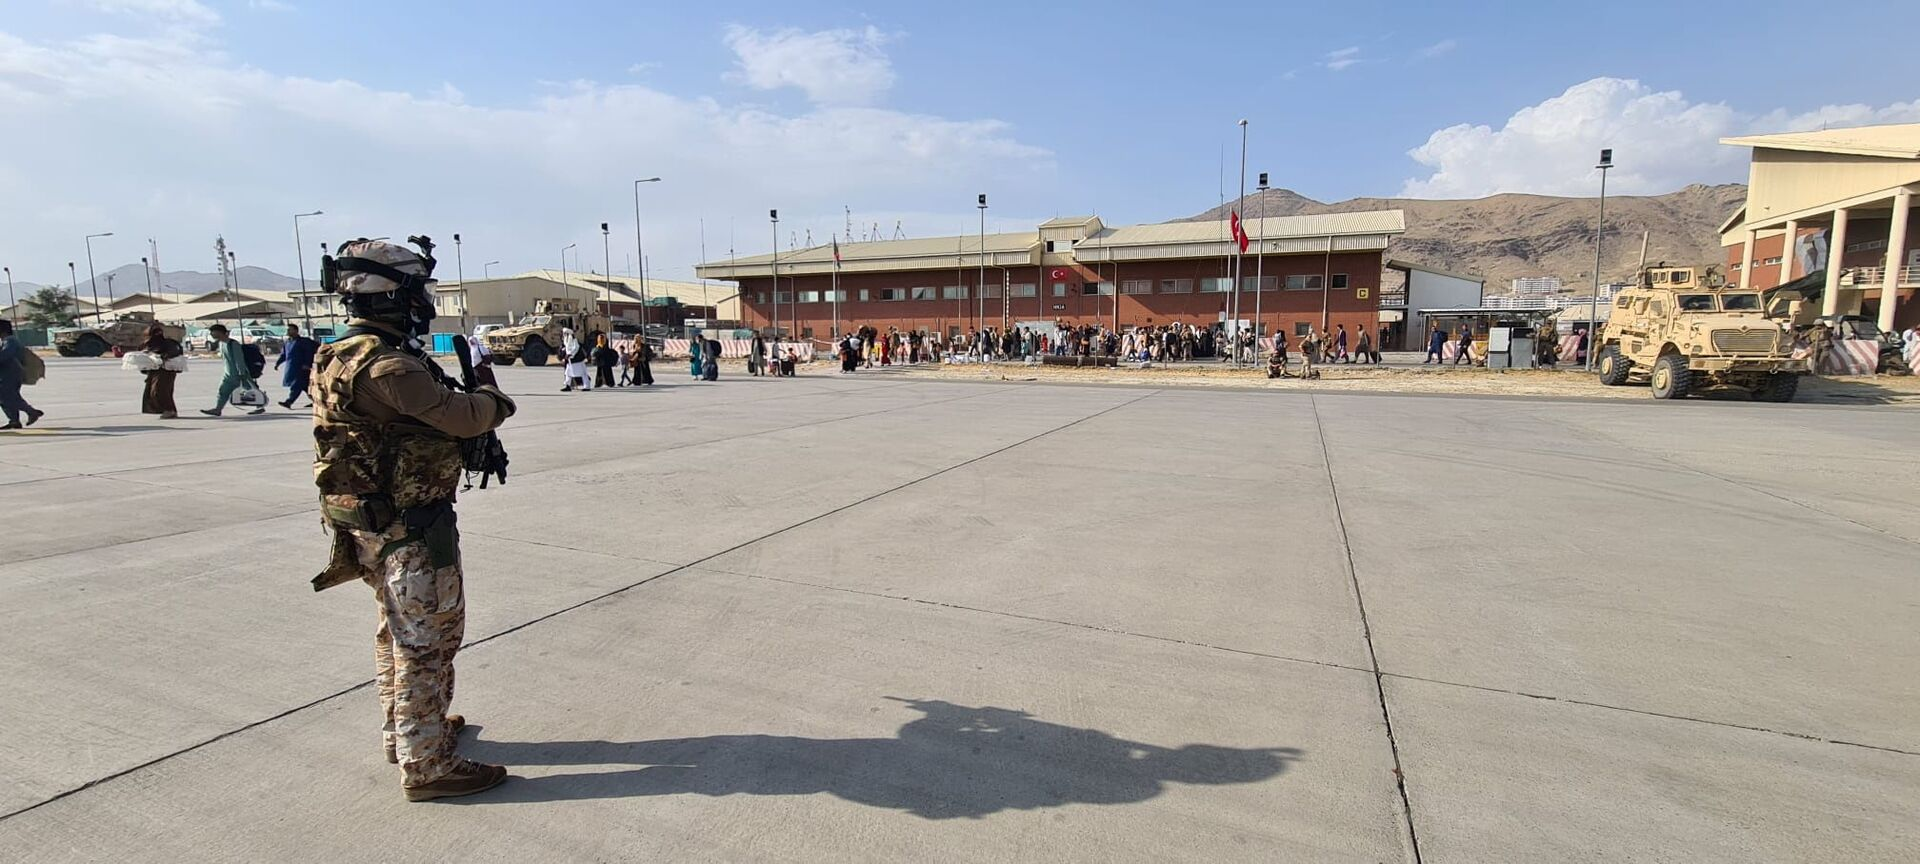 Afghan evacuees queue before boarding Italy's military aircraft C130J during the evacuation at Kabul's airport, Afghanistan, August 22, 2021. Italian Ministry of Defence/Handout via REUTERS - Sputnik International, 1920, 07.09.2021